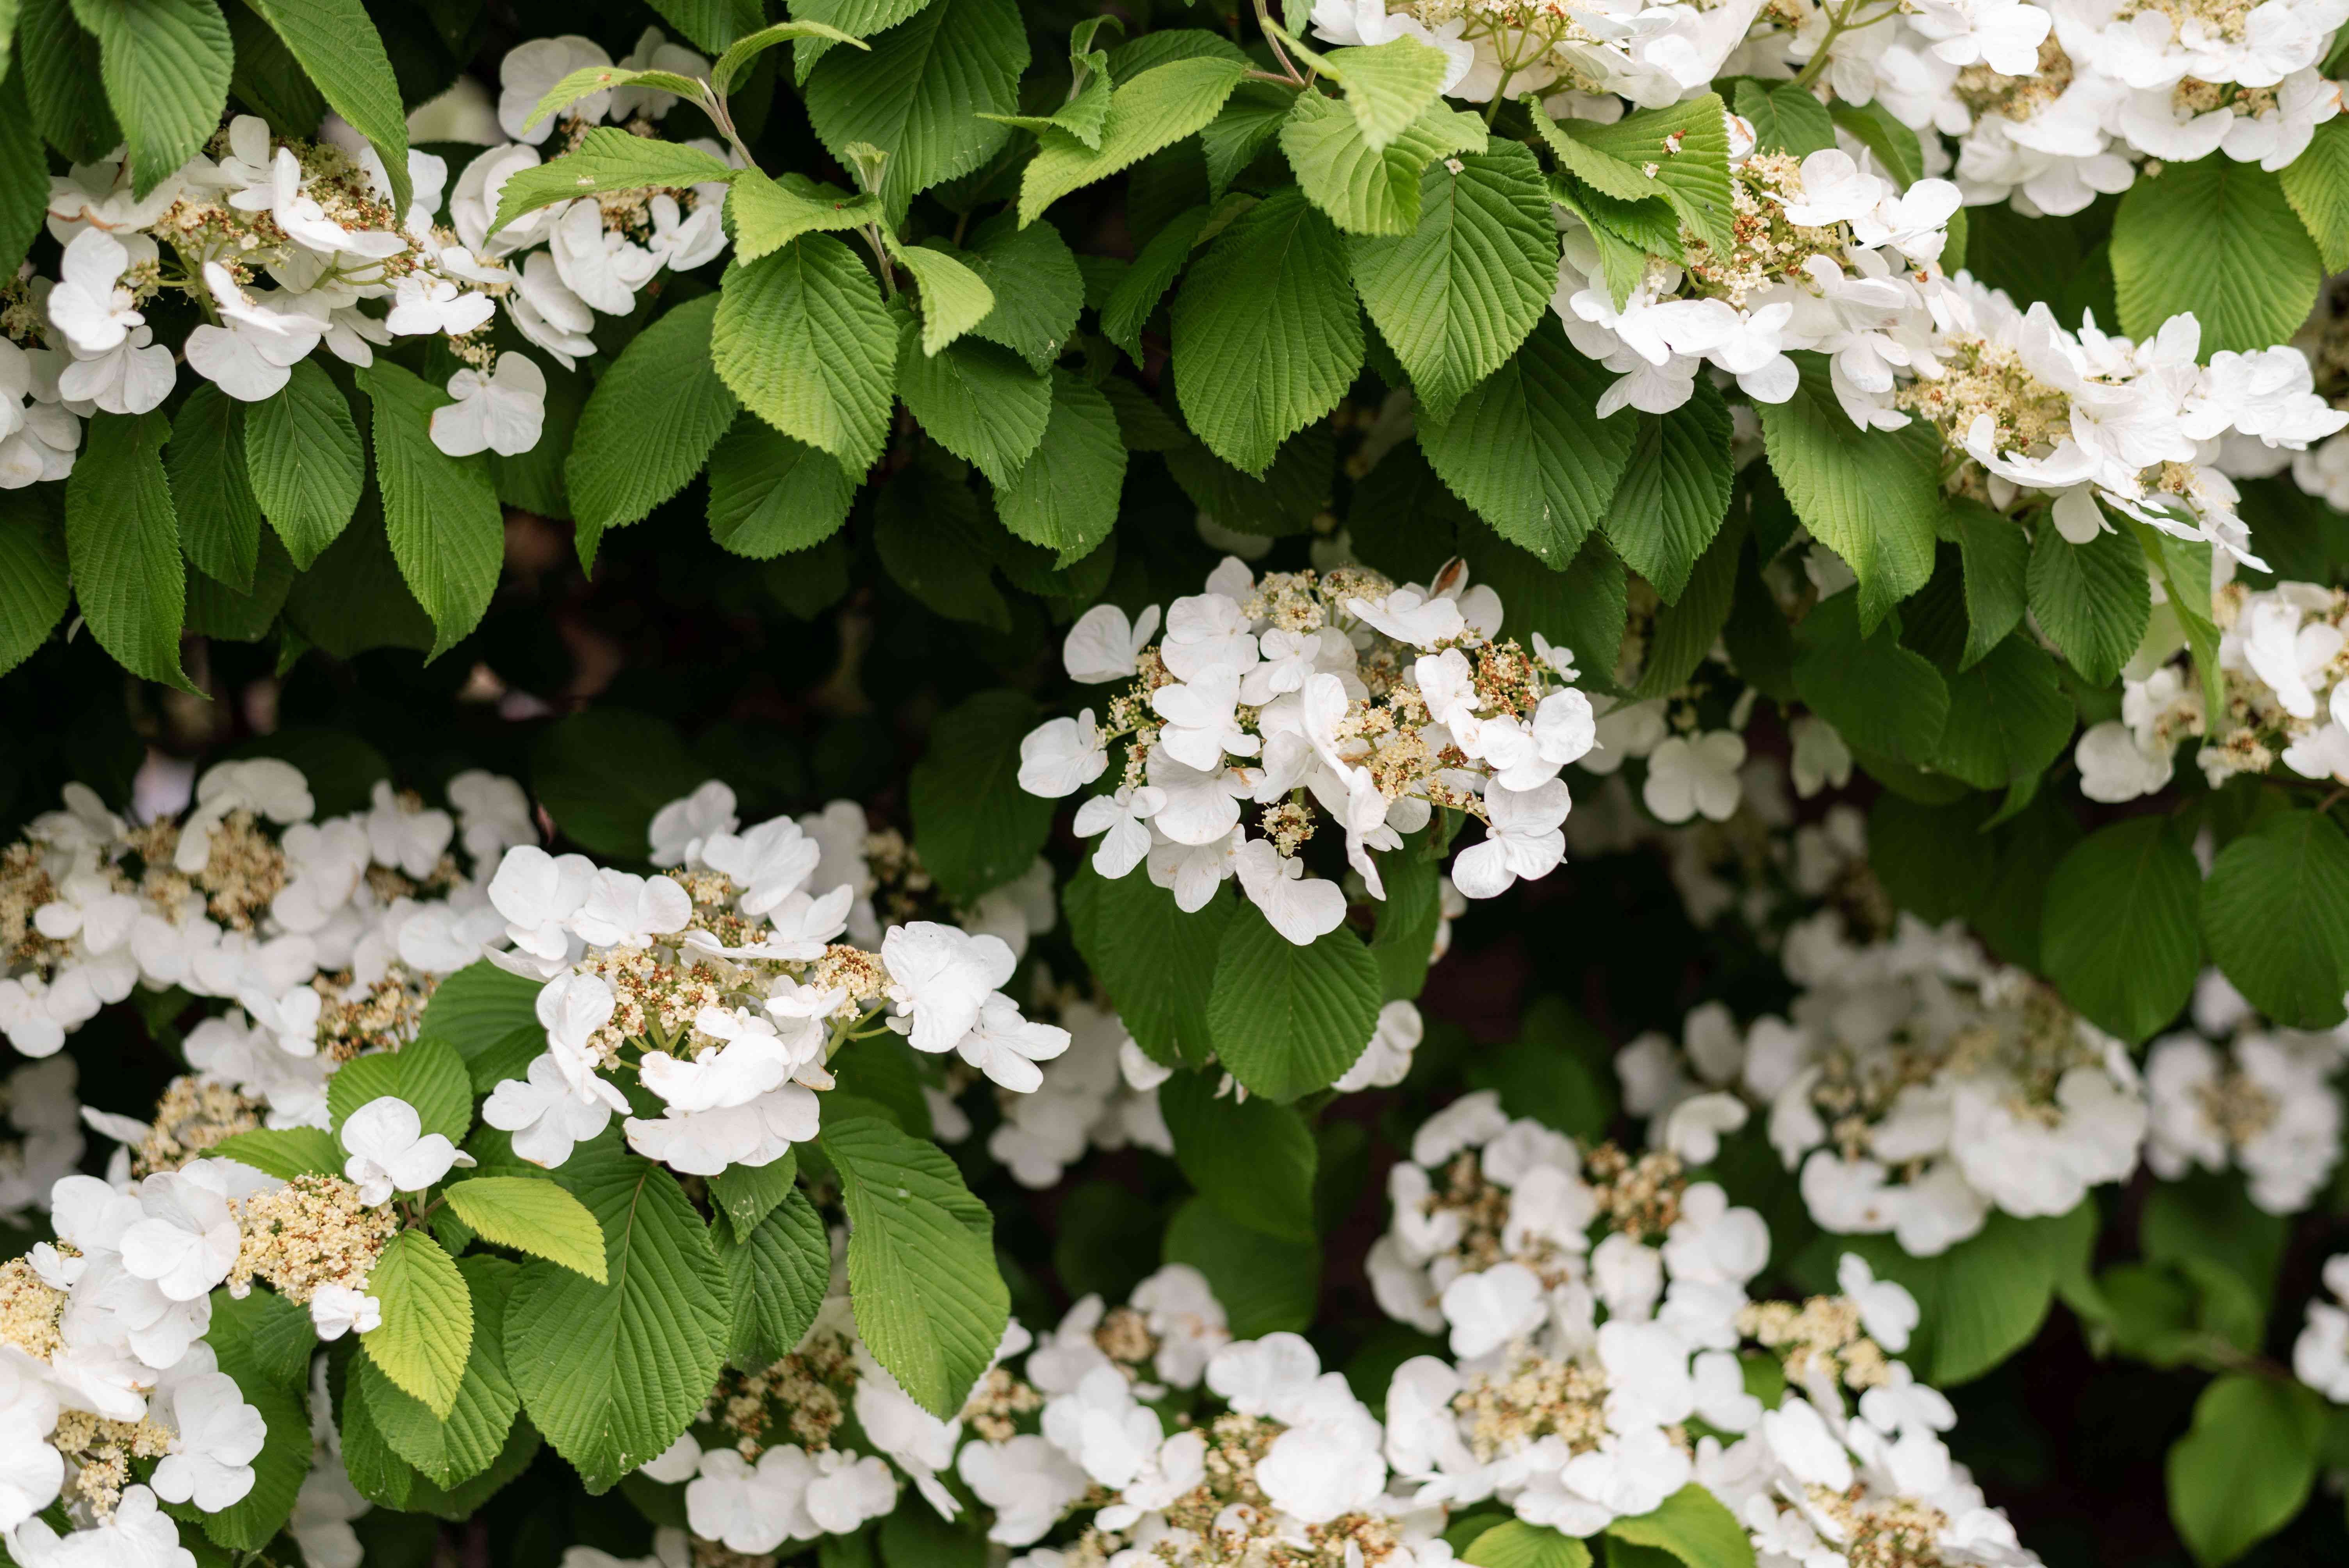 Climbing hydrangea vines with lacy white flower clusters in between ribbed leaves